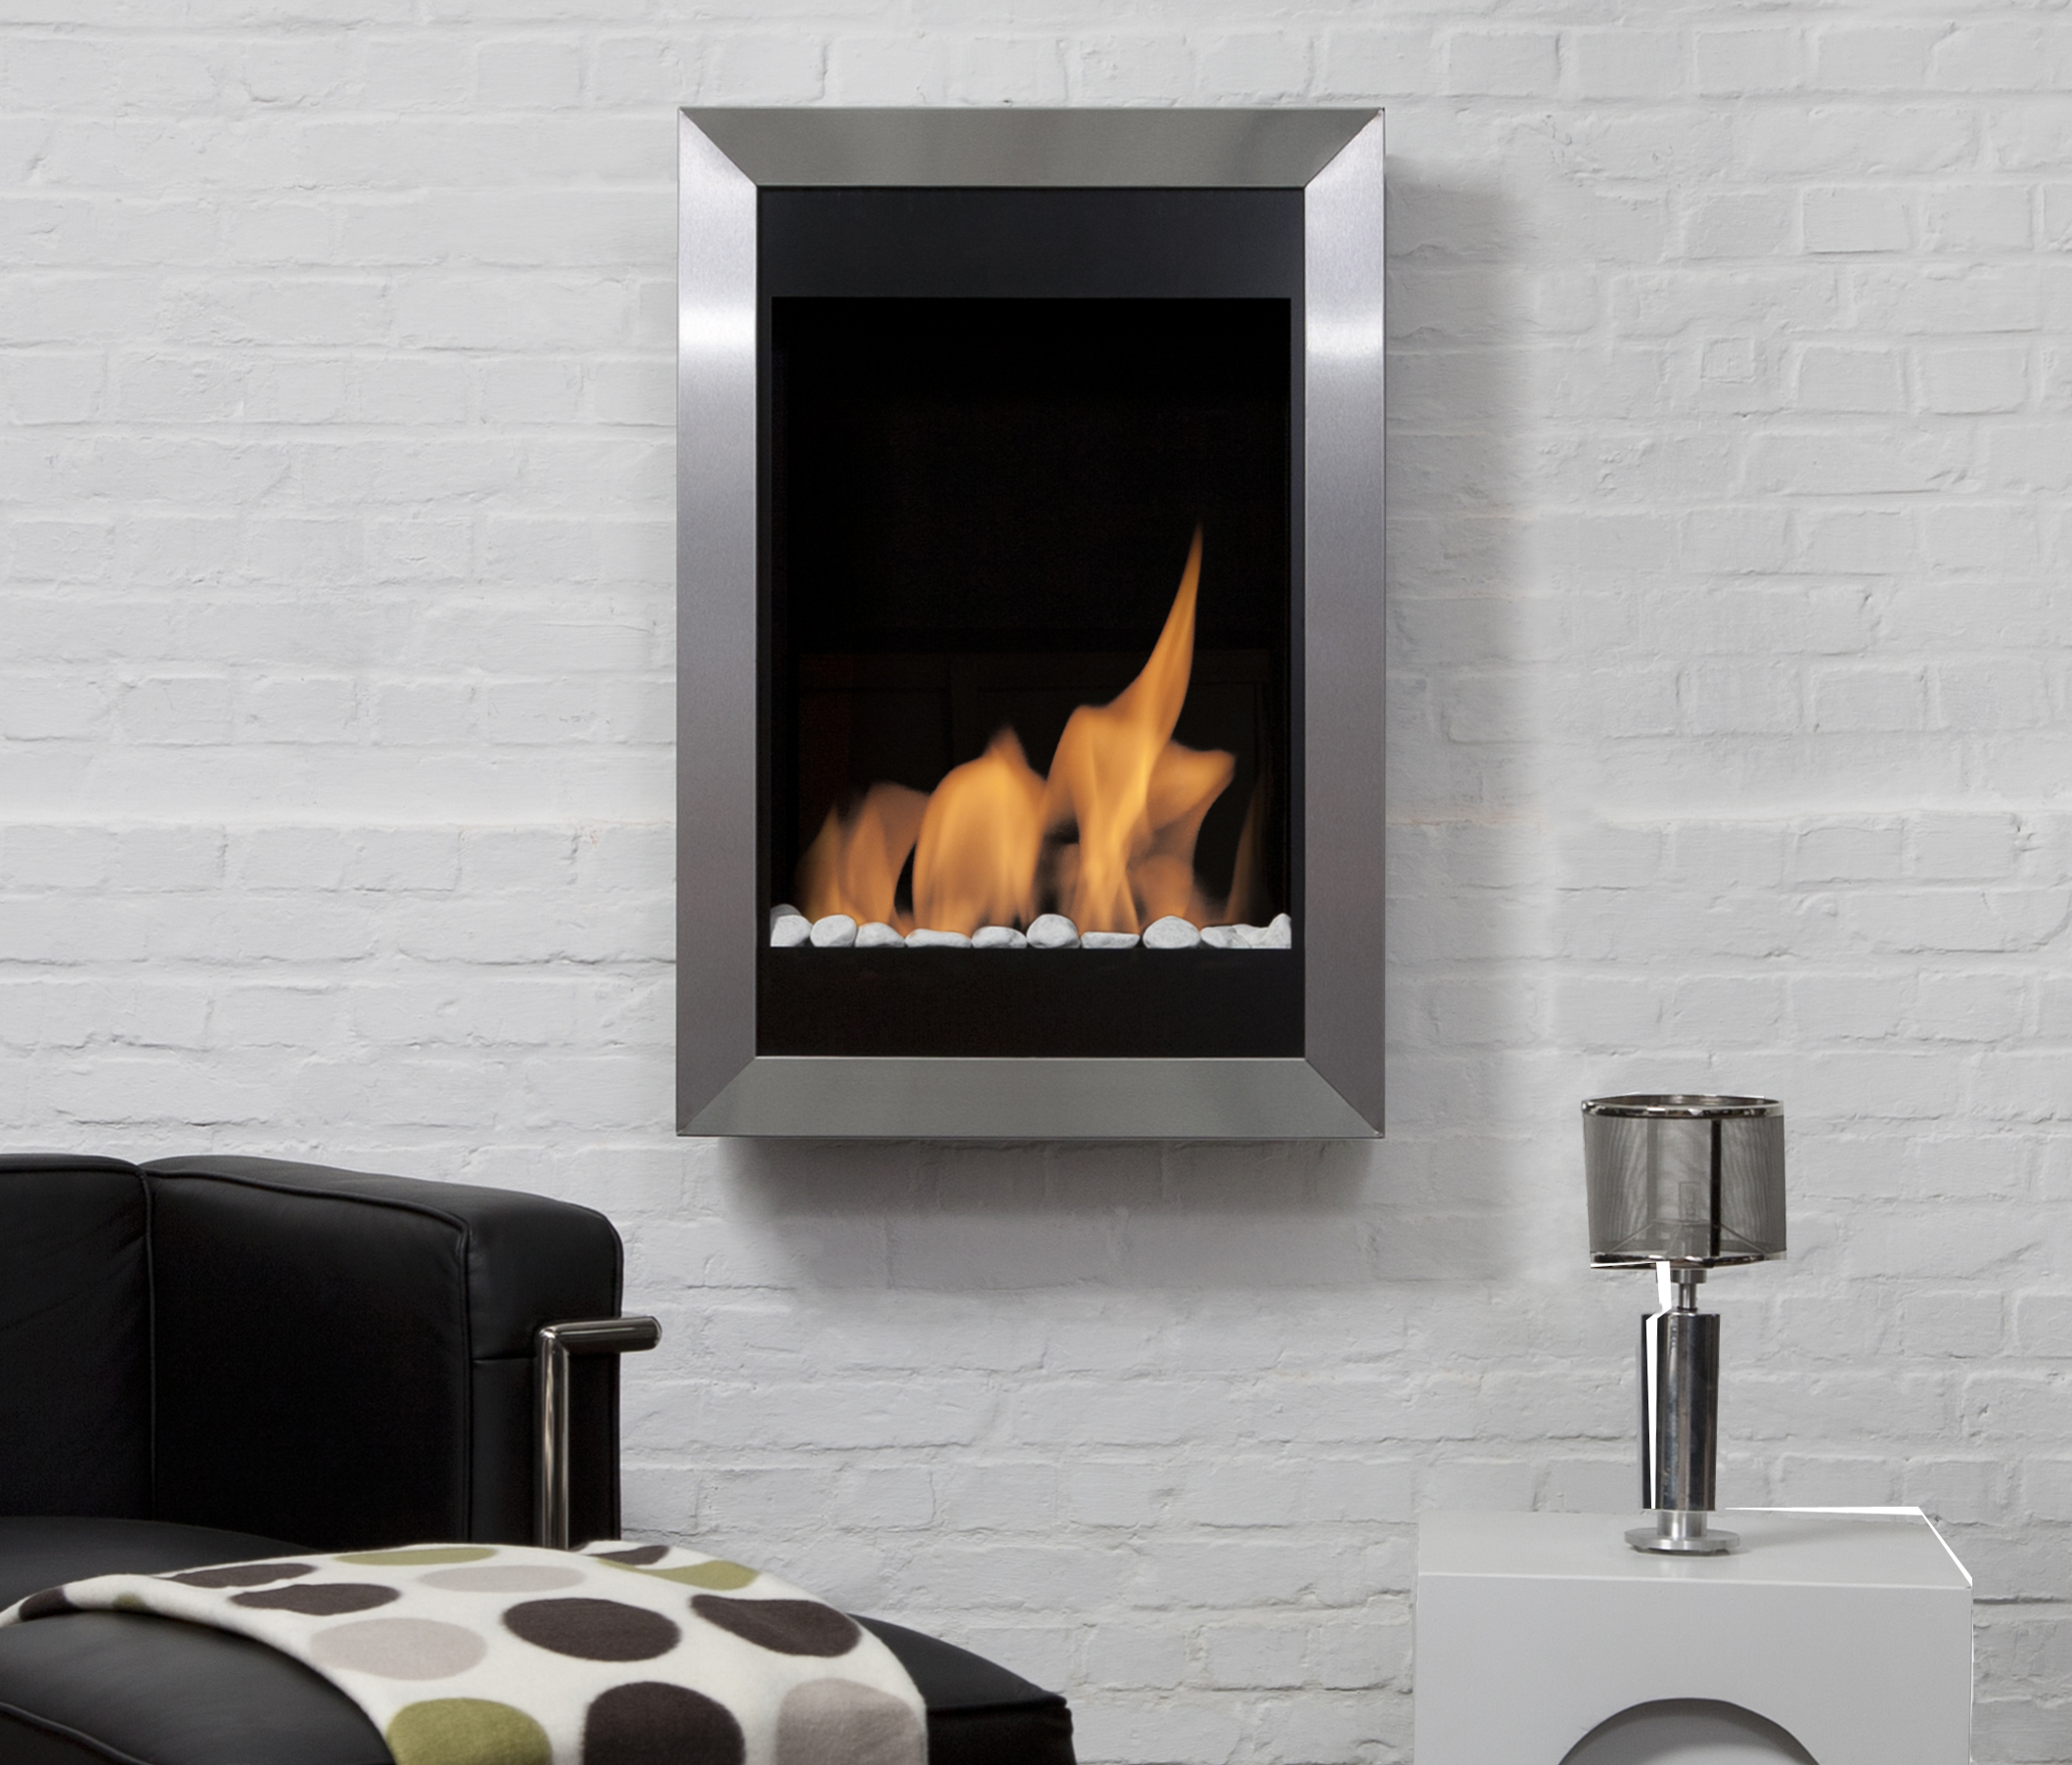 melibea climacity product mounted contemporary hearth purline fireplace wall bioethanol open water prod vapor